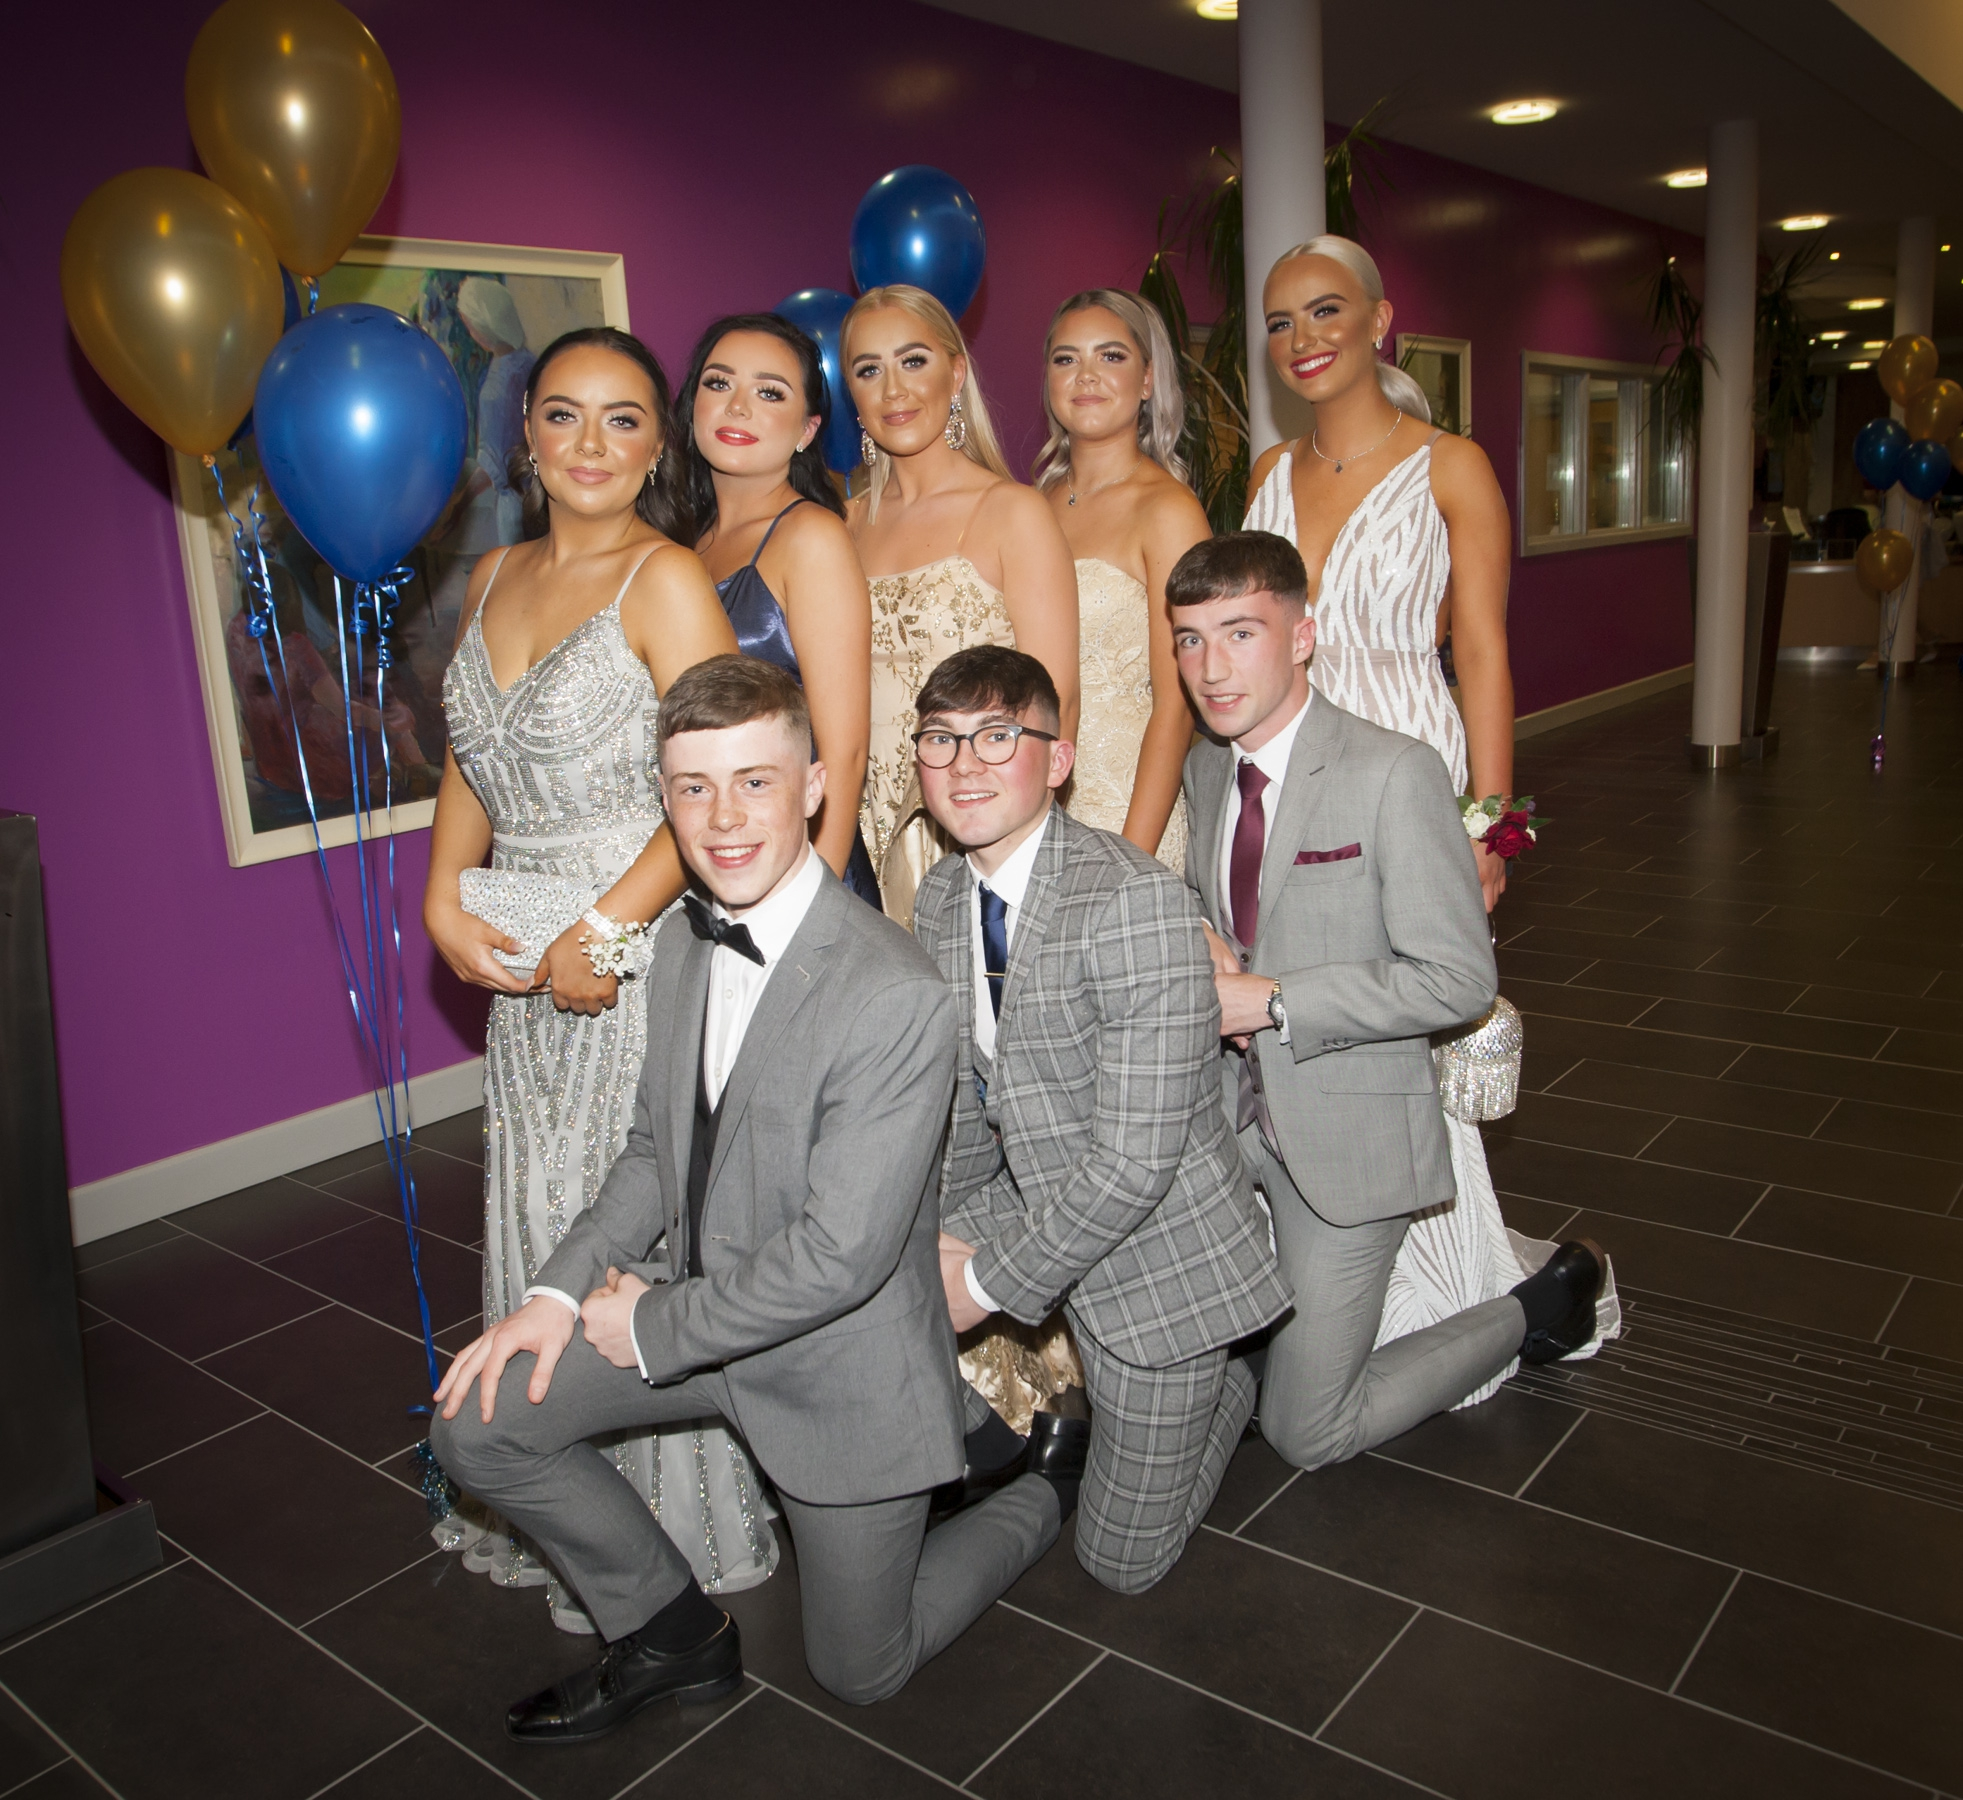 Pictured at the St. Mary's College Annual Formal on Thursday night last are Shannagh McDermott, Sean Mullan, Niamh and Oran, Megan O'Doherty and Emma Jones and Rua Duffy and Oran Duddy.